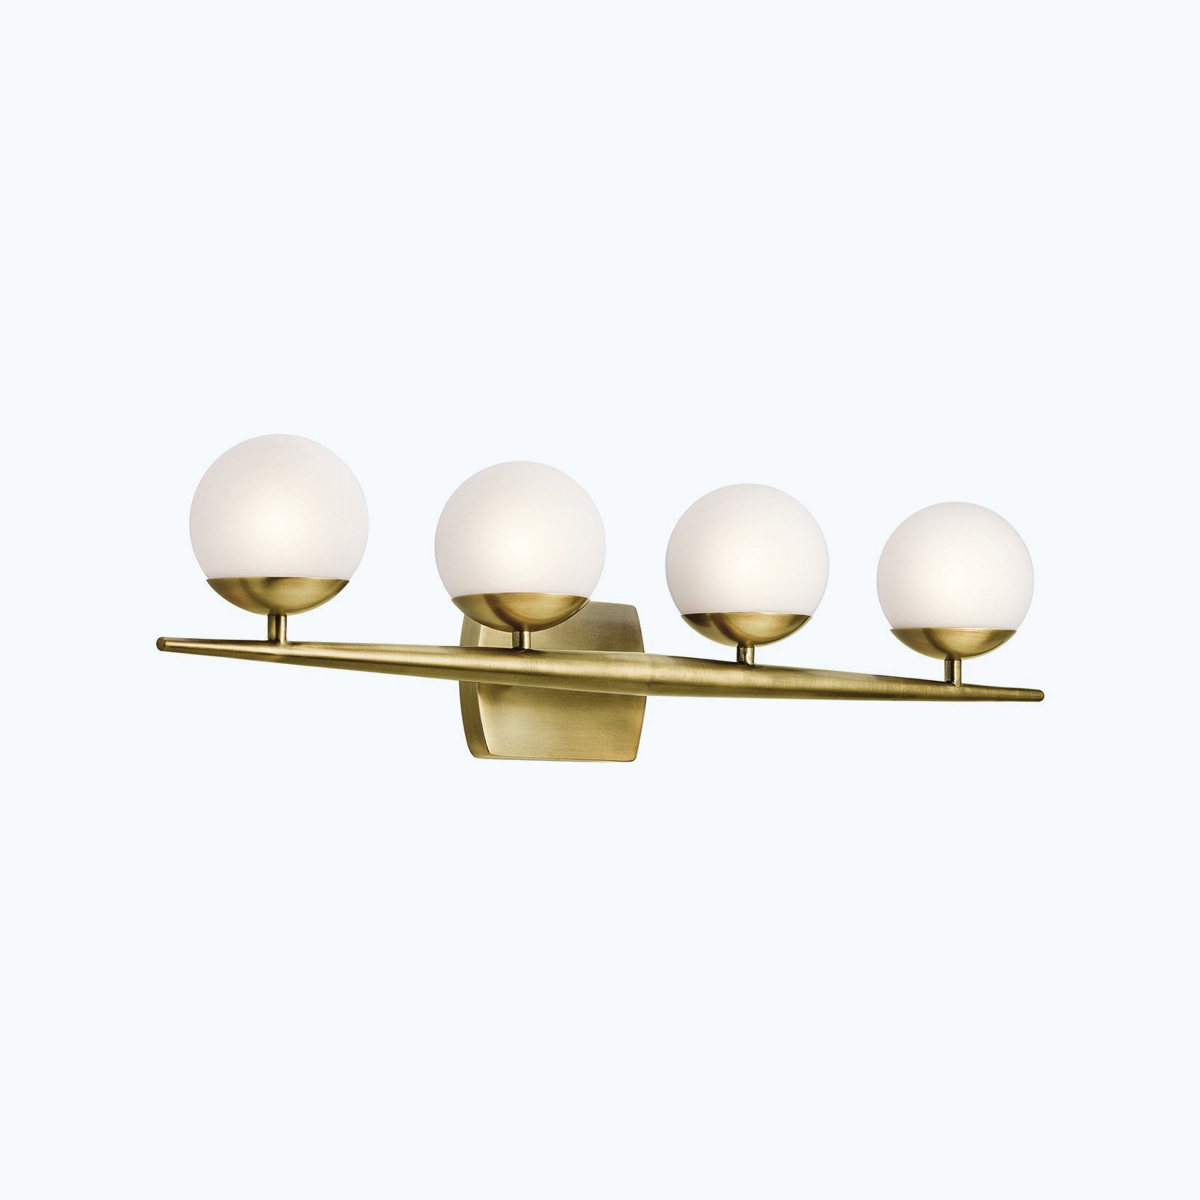 Four Light Bath Fixture